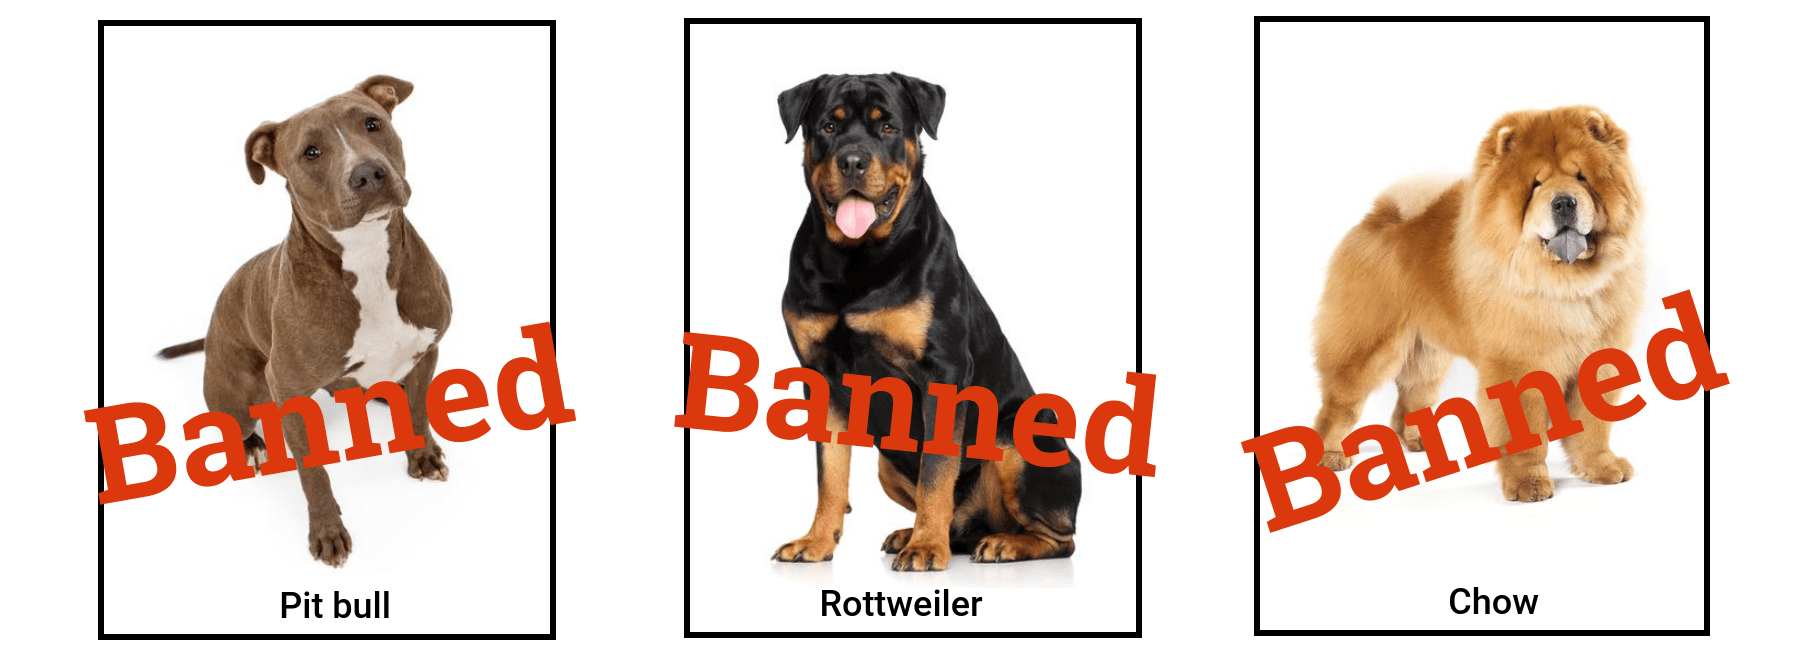 Study Pit Bulls And Rottweilers Most Often Banned By Home Insurers